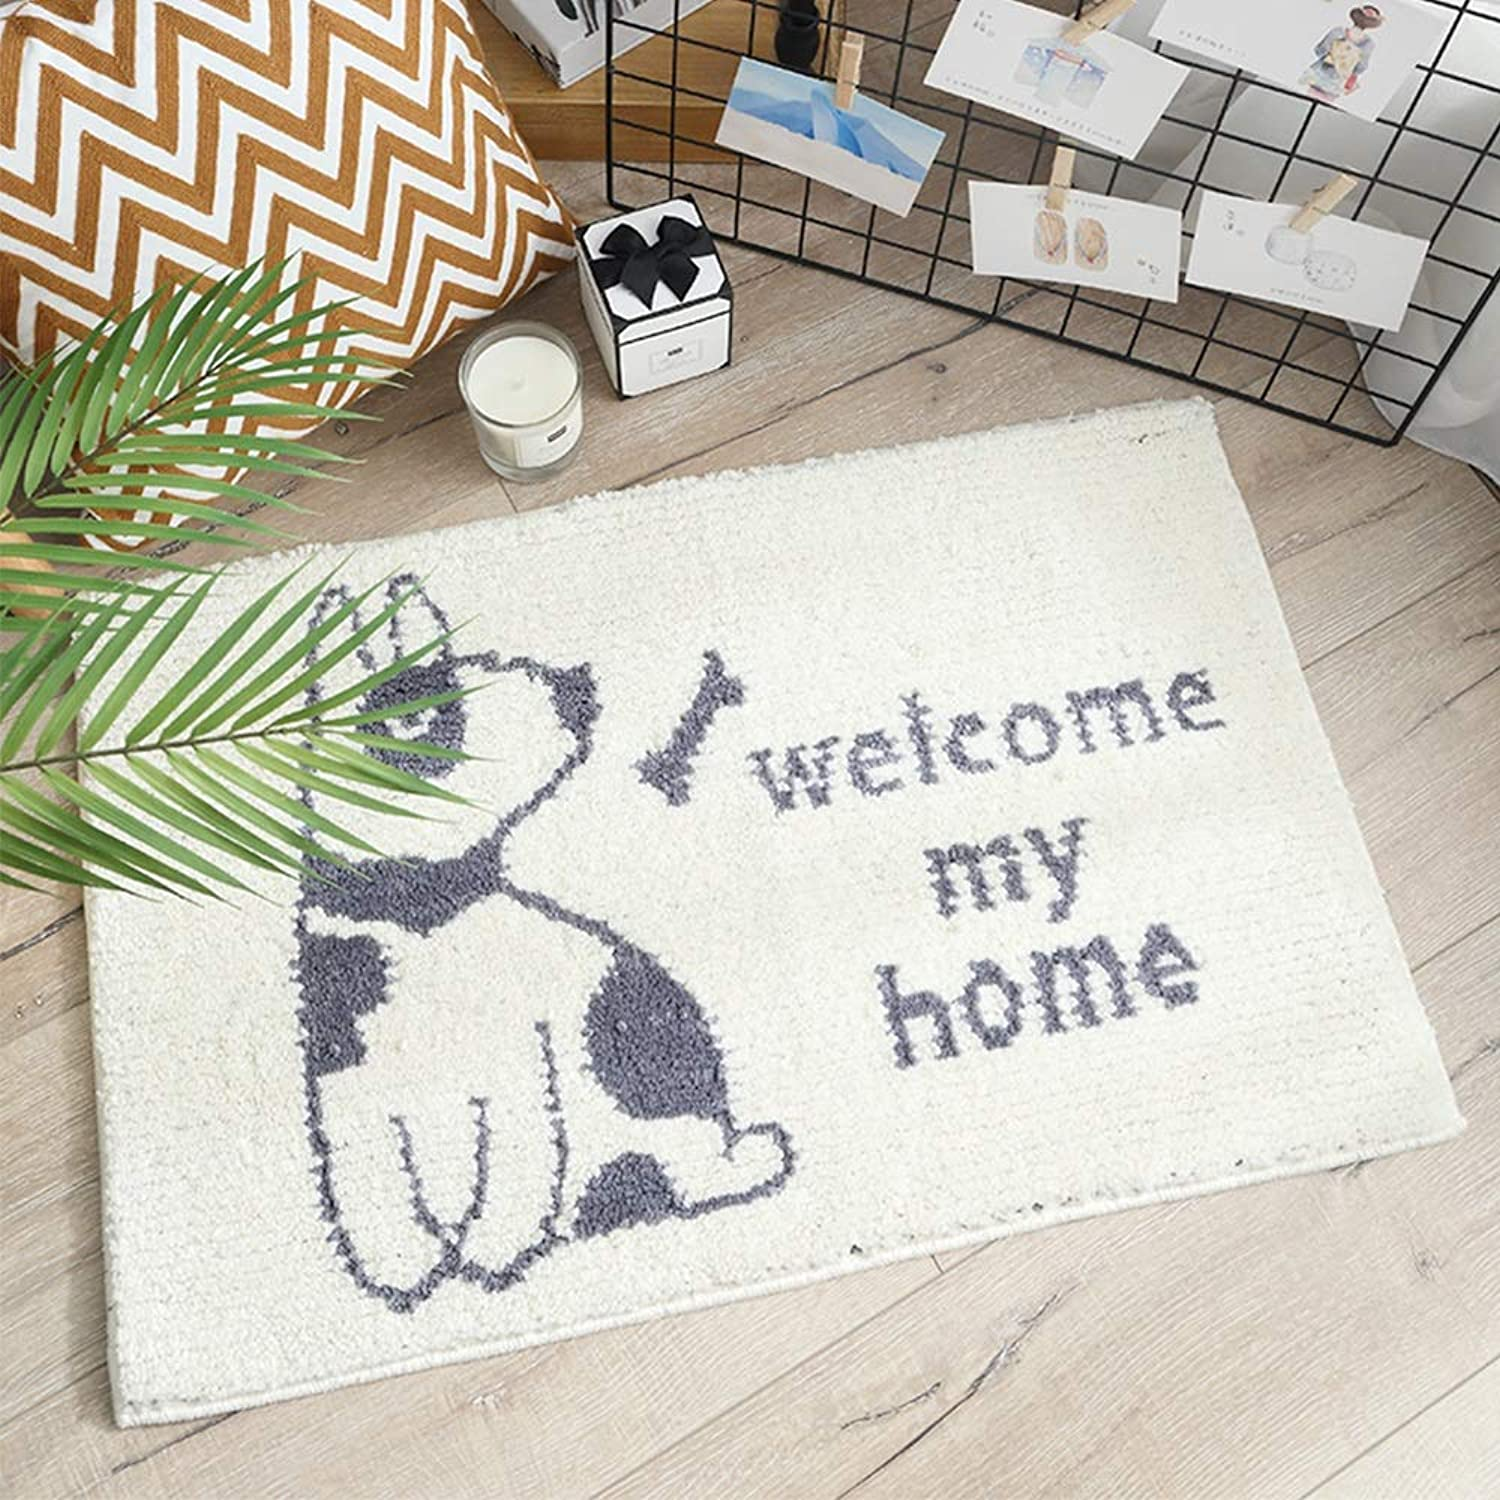 MING REN Floor mat Polyester Fabric Non-Slip Latex Sole, Absorbent and Non-Slip, Comfortable, Simple and Versatile, Household Bathroom Kitchen Bedroom Absorbent pad Floor mat Bathroom